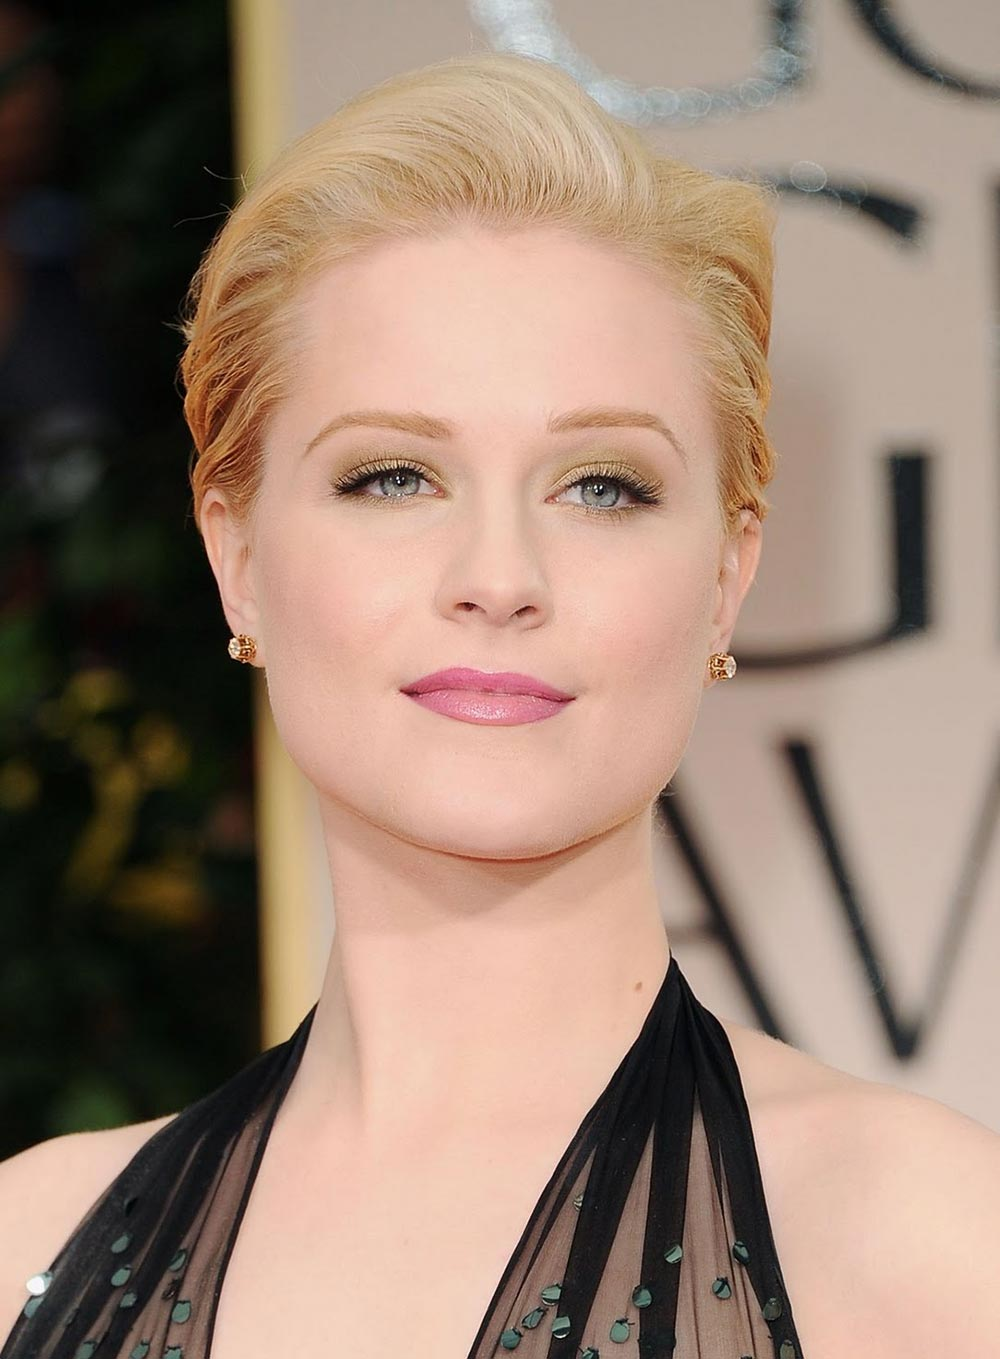 evan-rachel-wood-makeup-2012-golden-globes